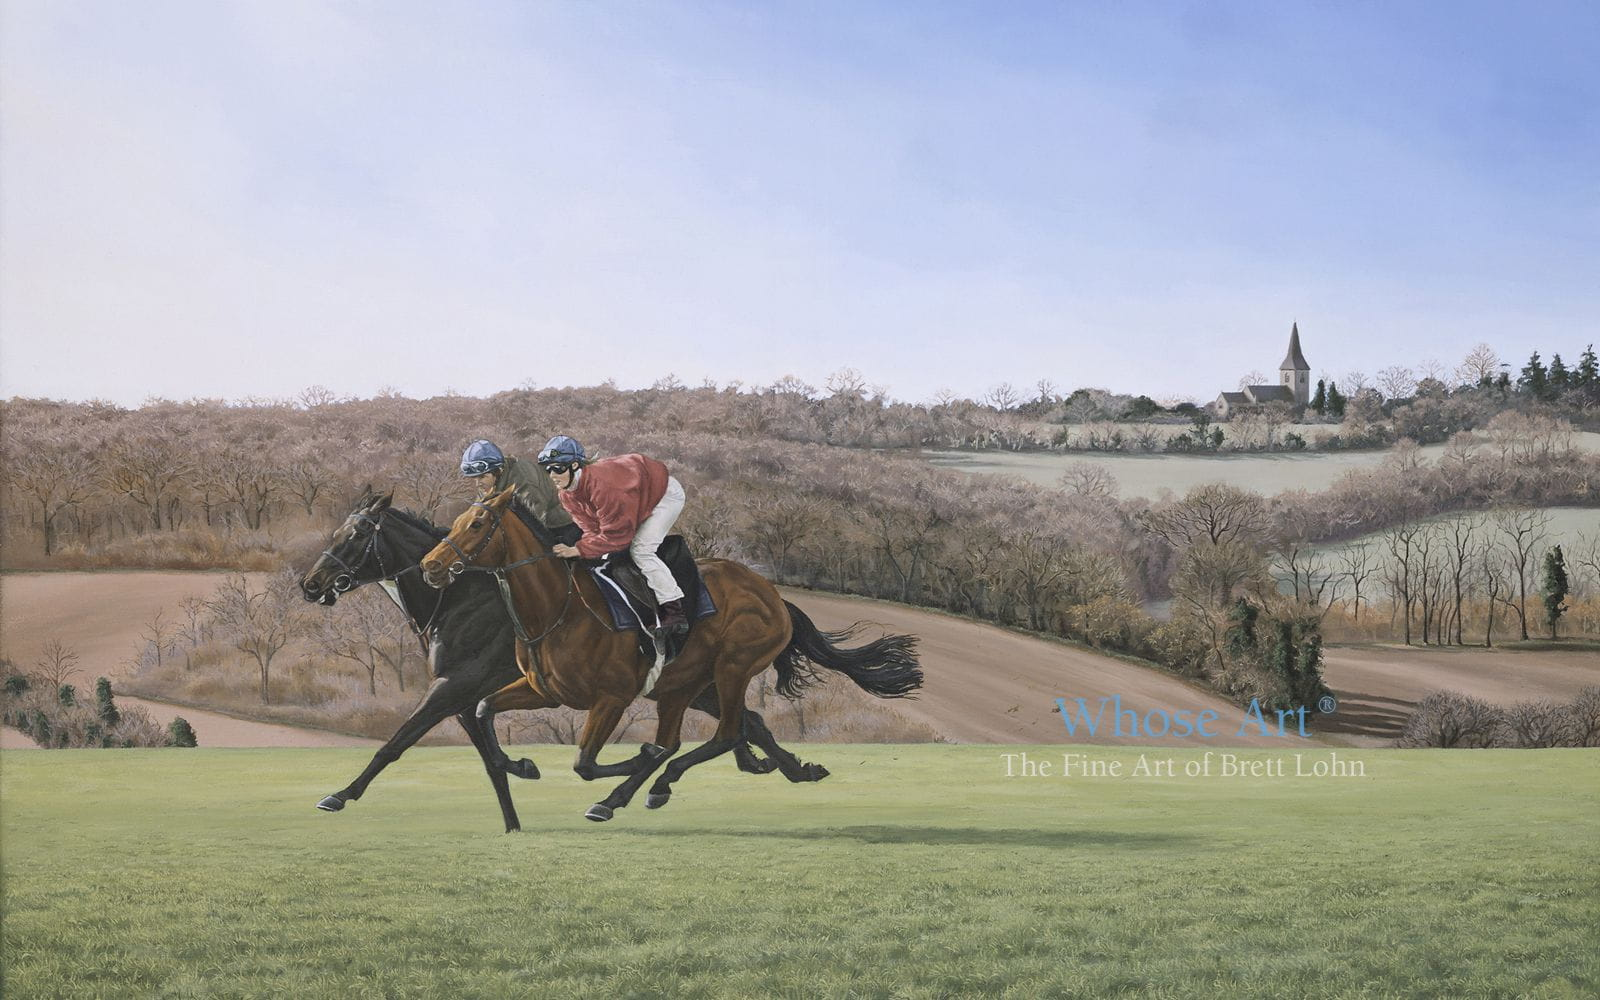 Canvas Art Print of two horses galloping in the sunrise on Epsom Downs. Reproduced from a beautiful horse art oil painting.